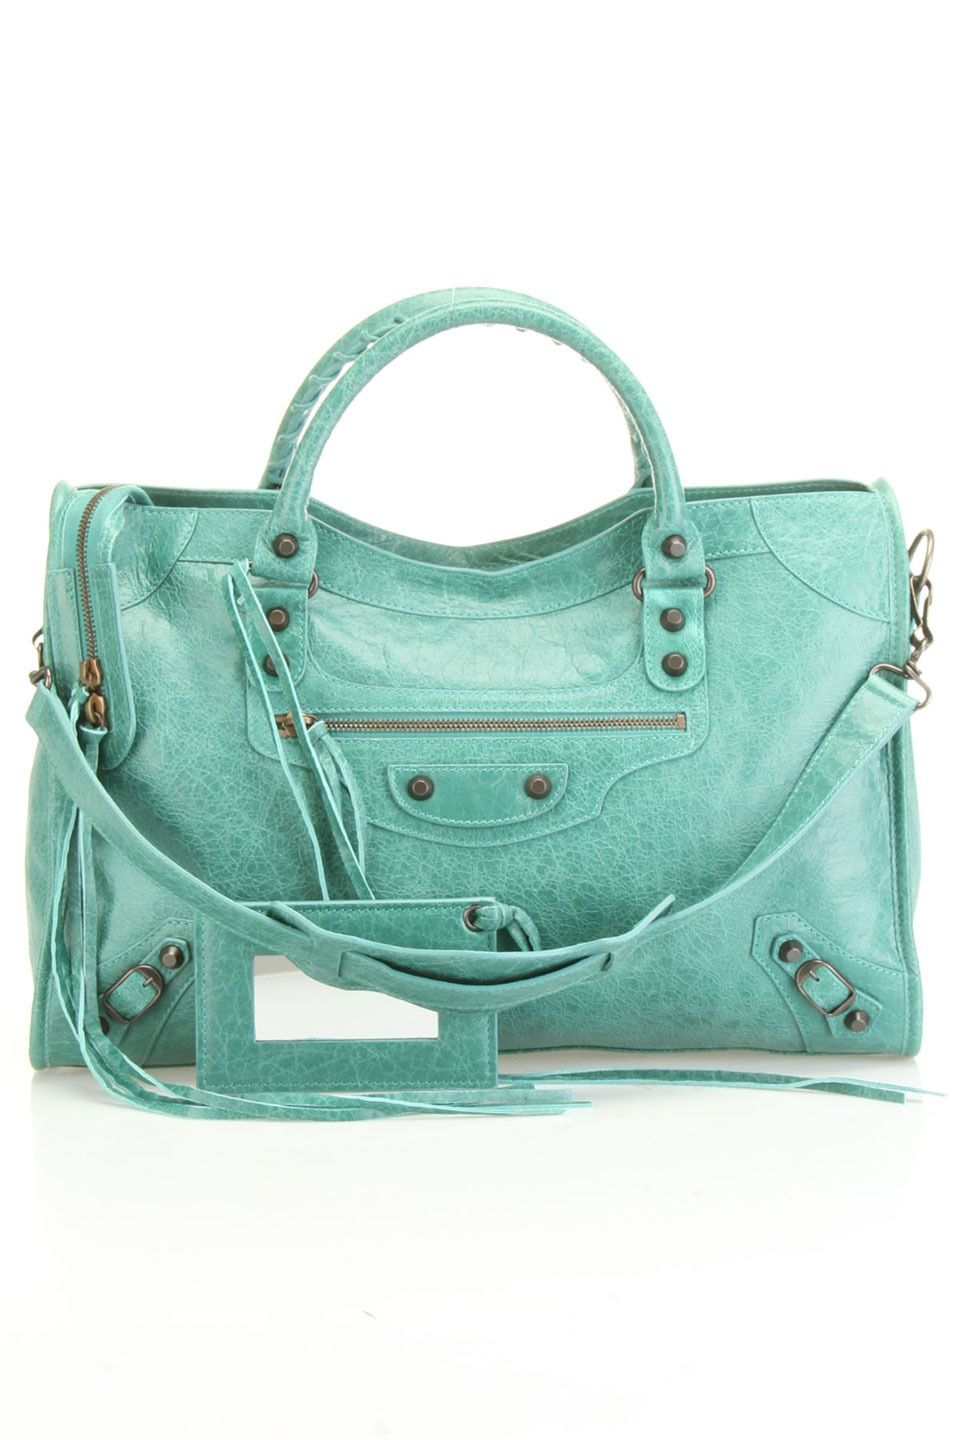 5f246766f937 Handbag In Green Sage.